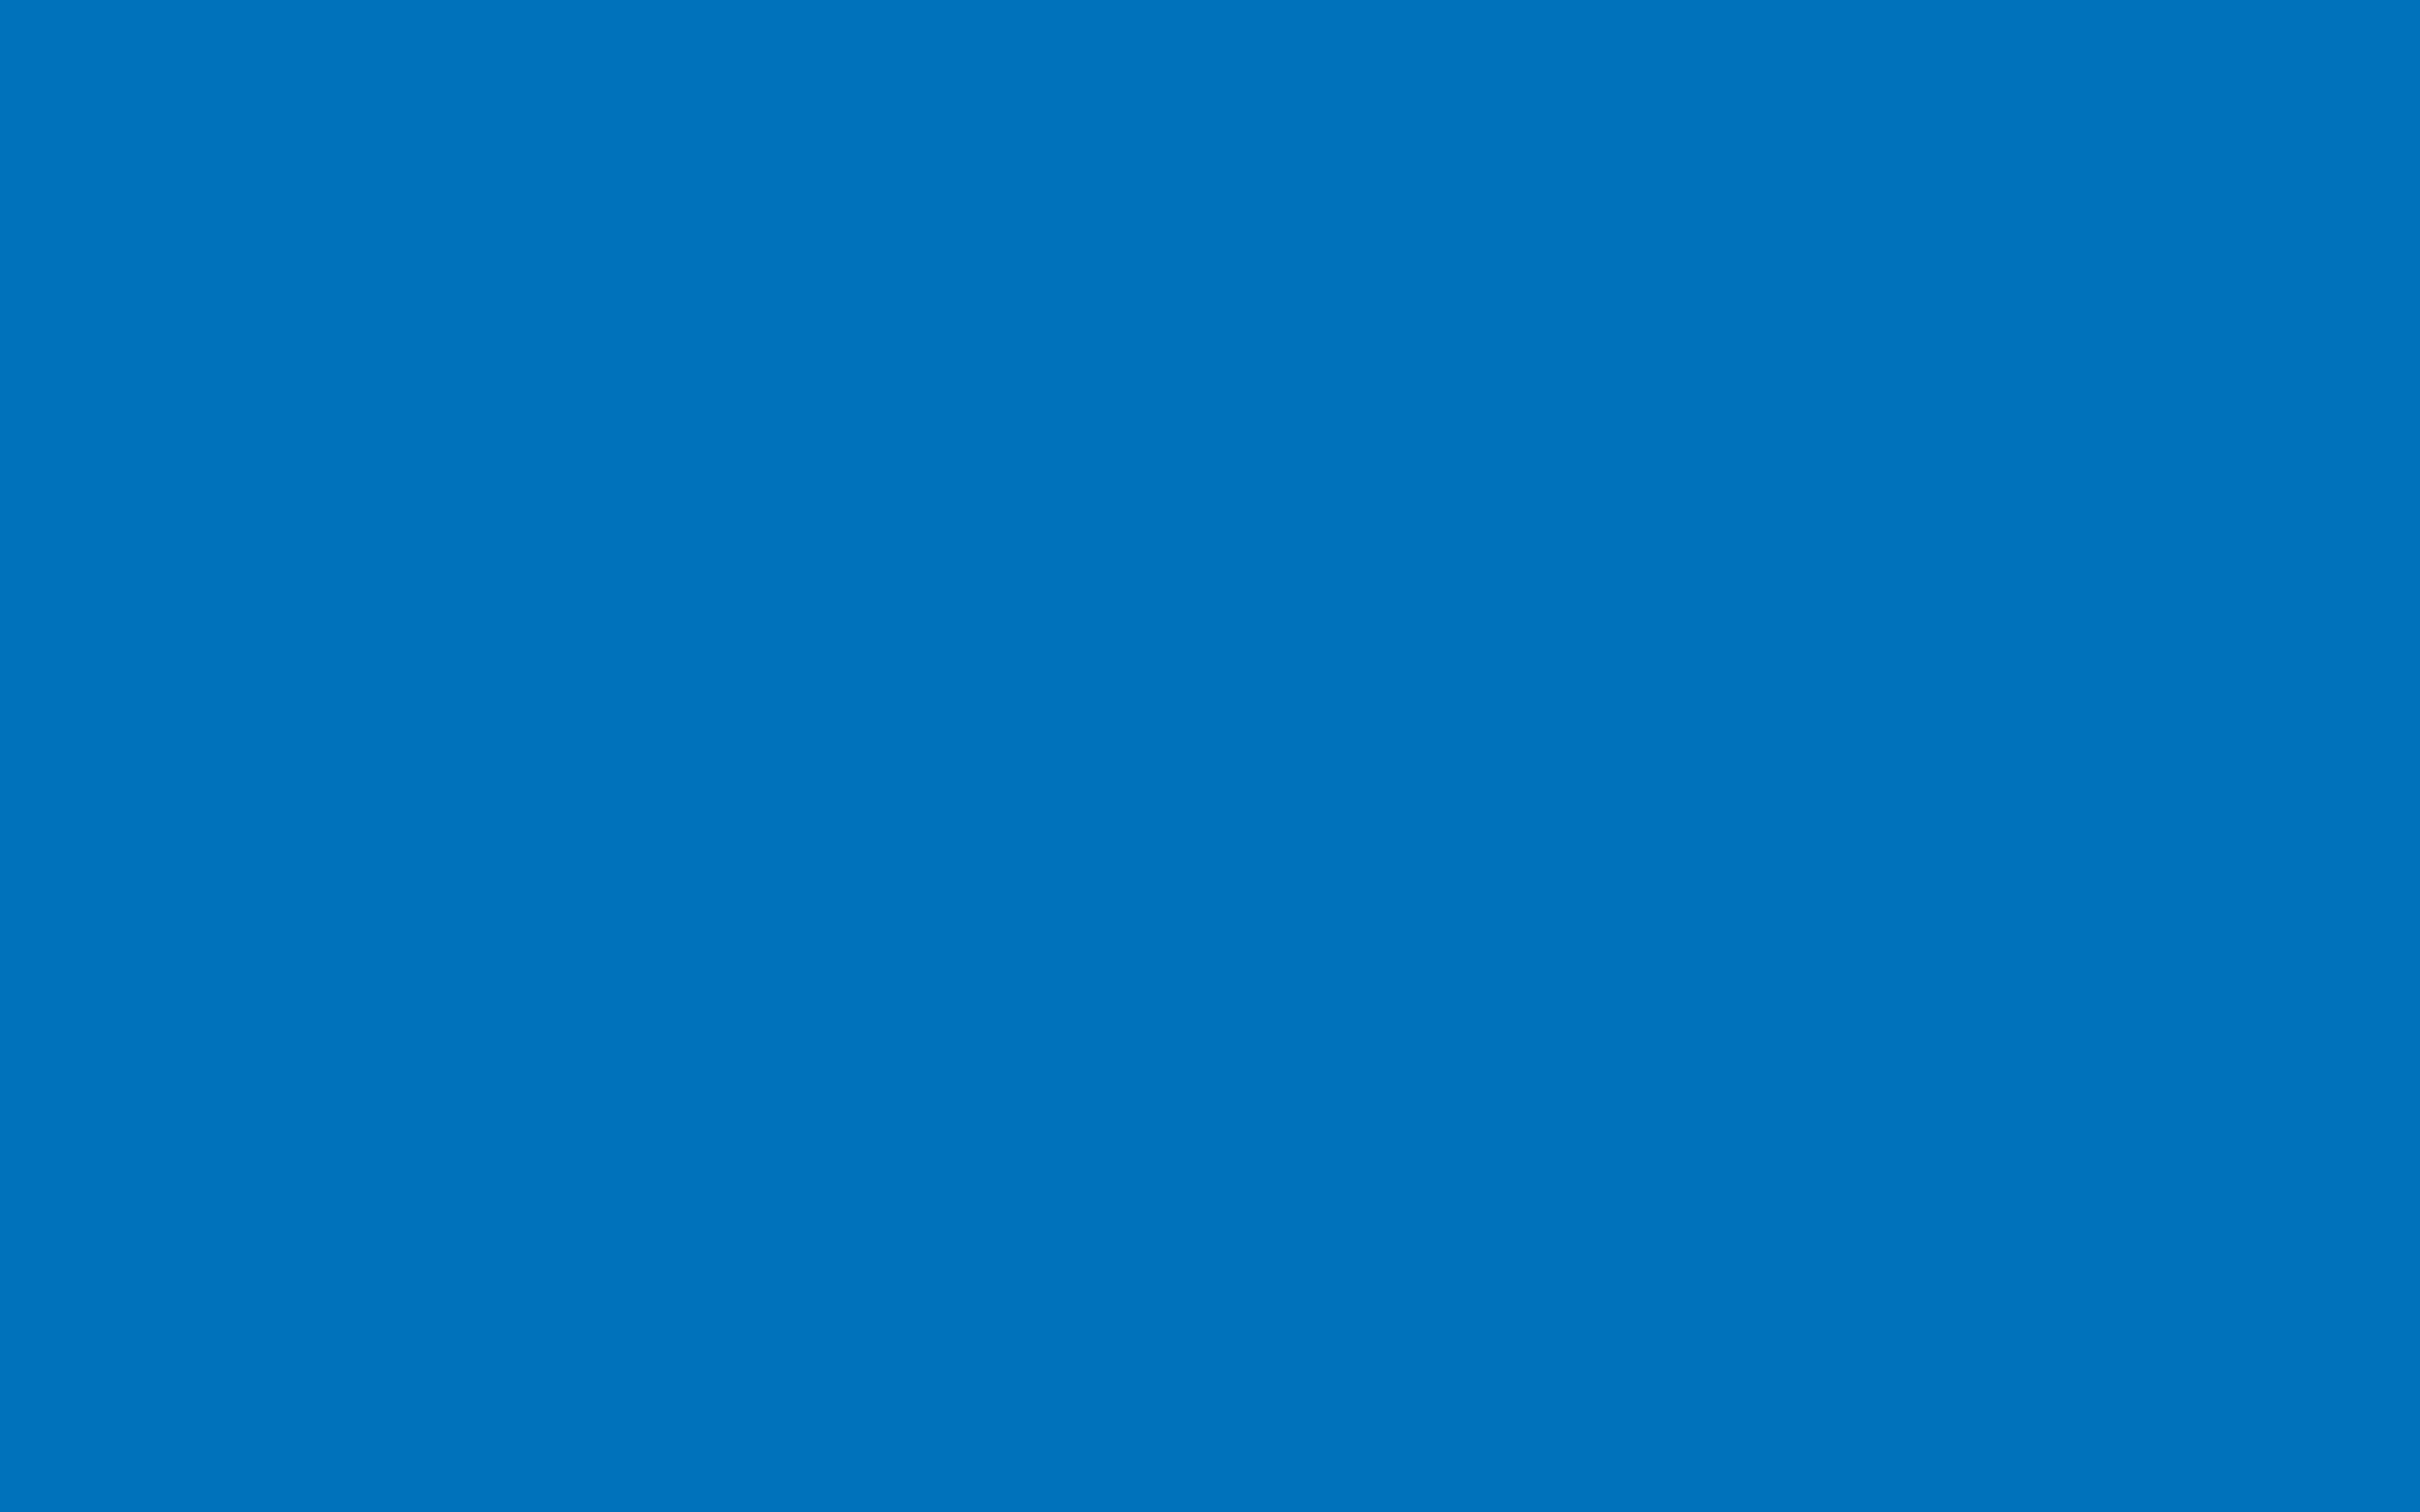 2560x1600 French Blue Solid Color Background